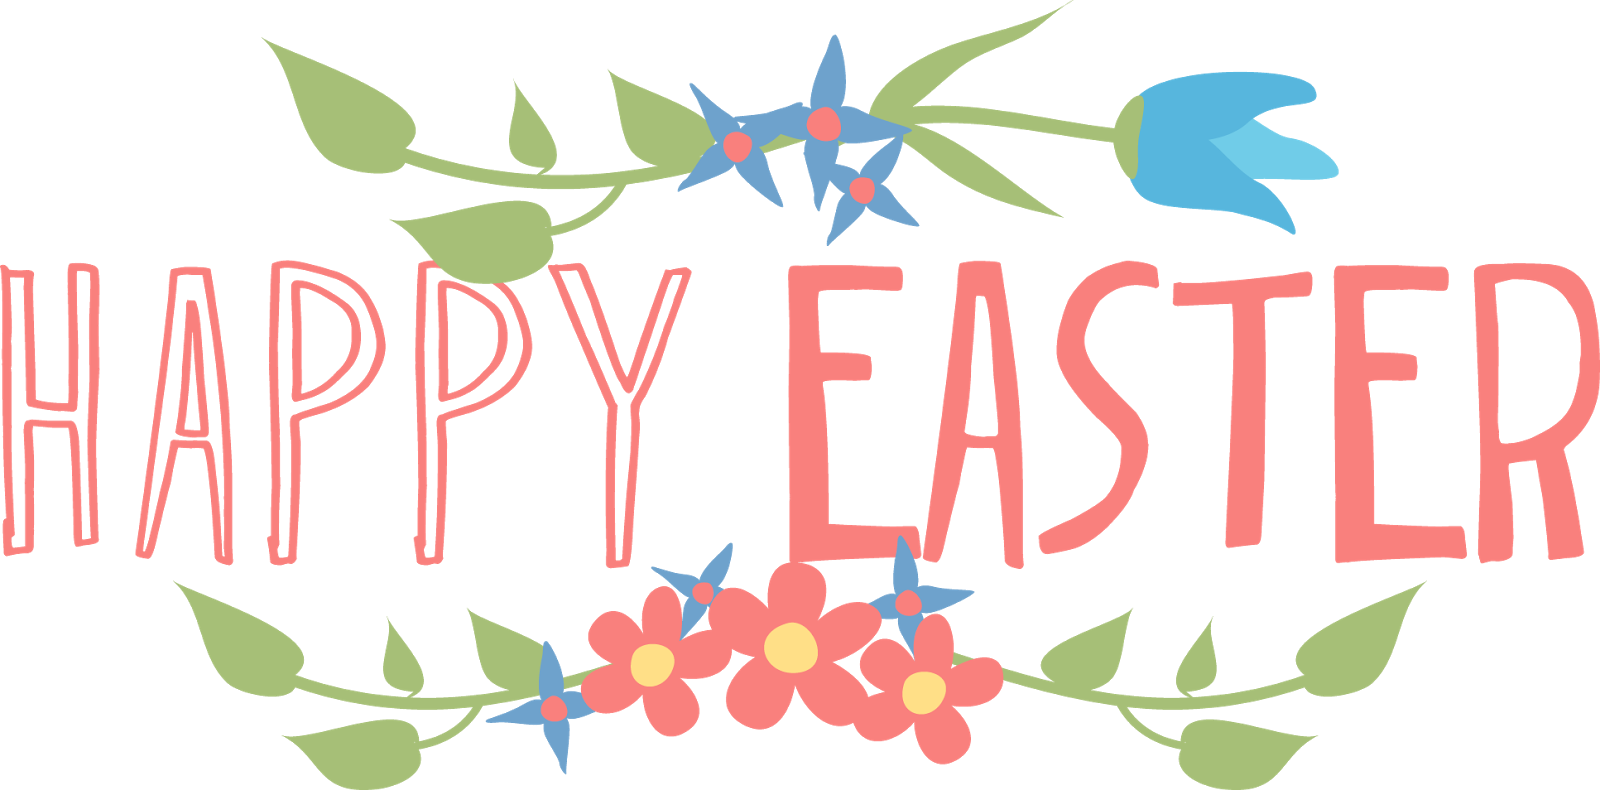 Happy easter png. Text